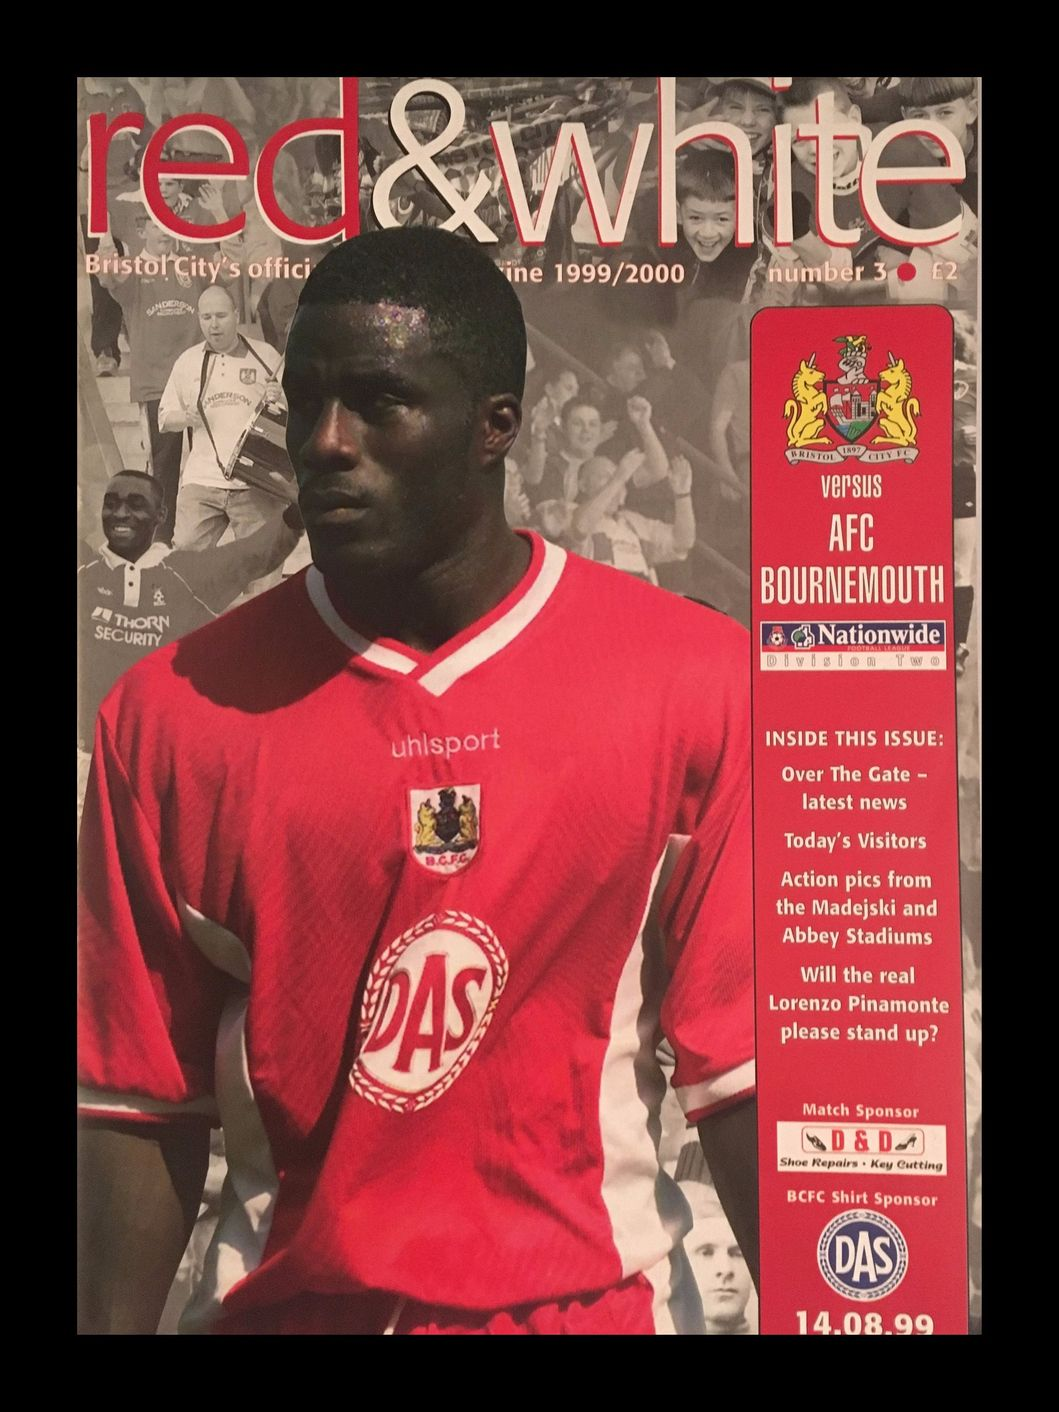 Bristol City v AFC Bournemouth 14-08-1999 Programme